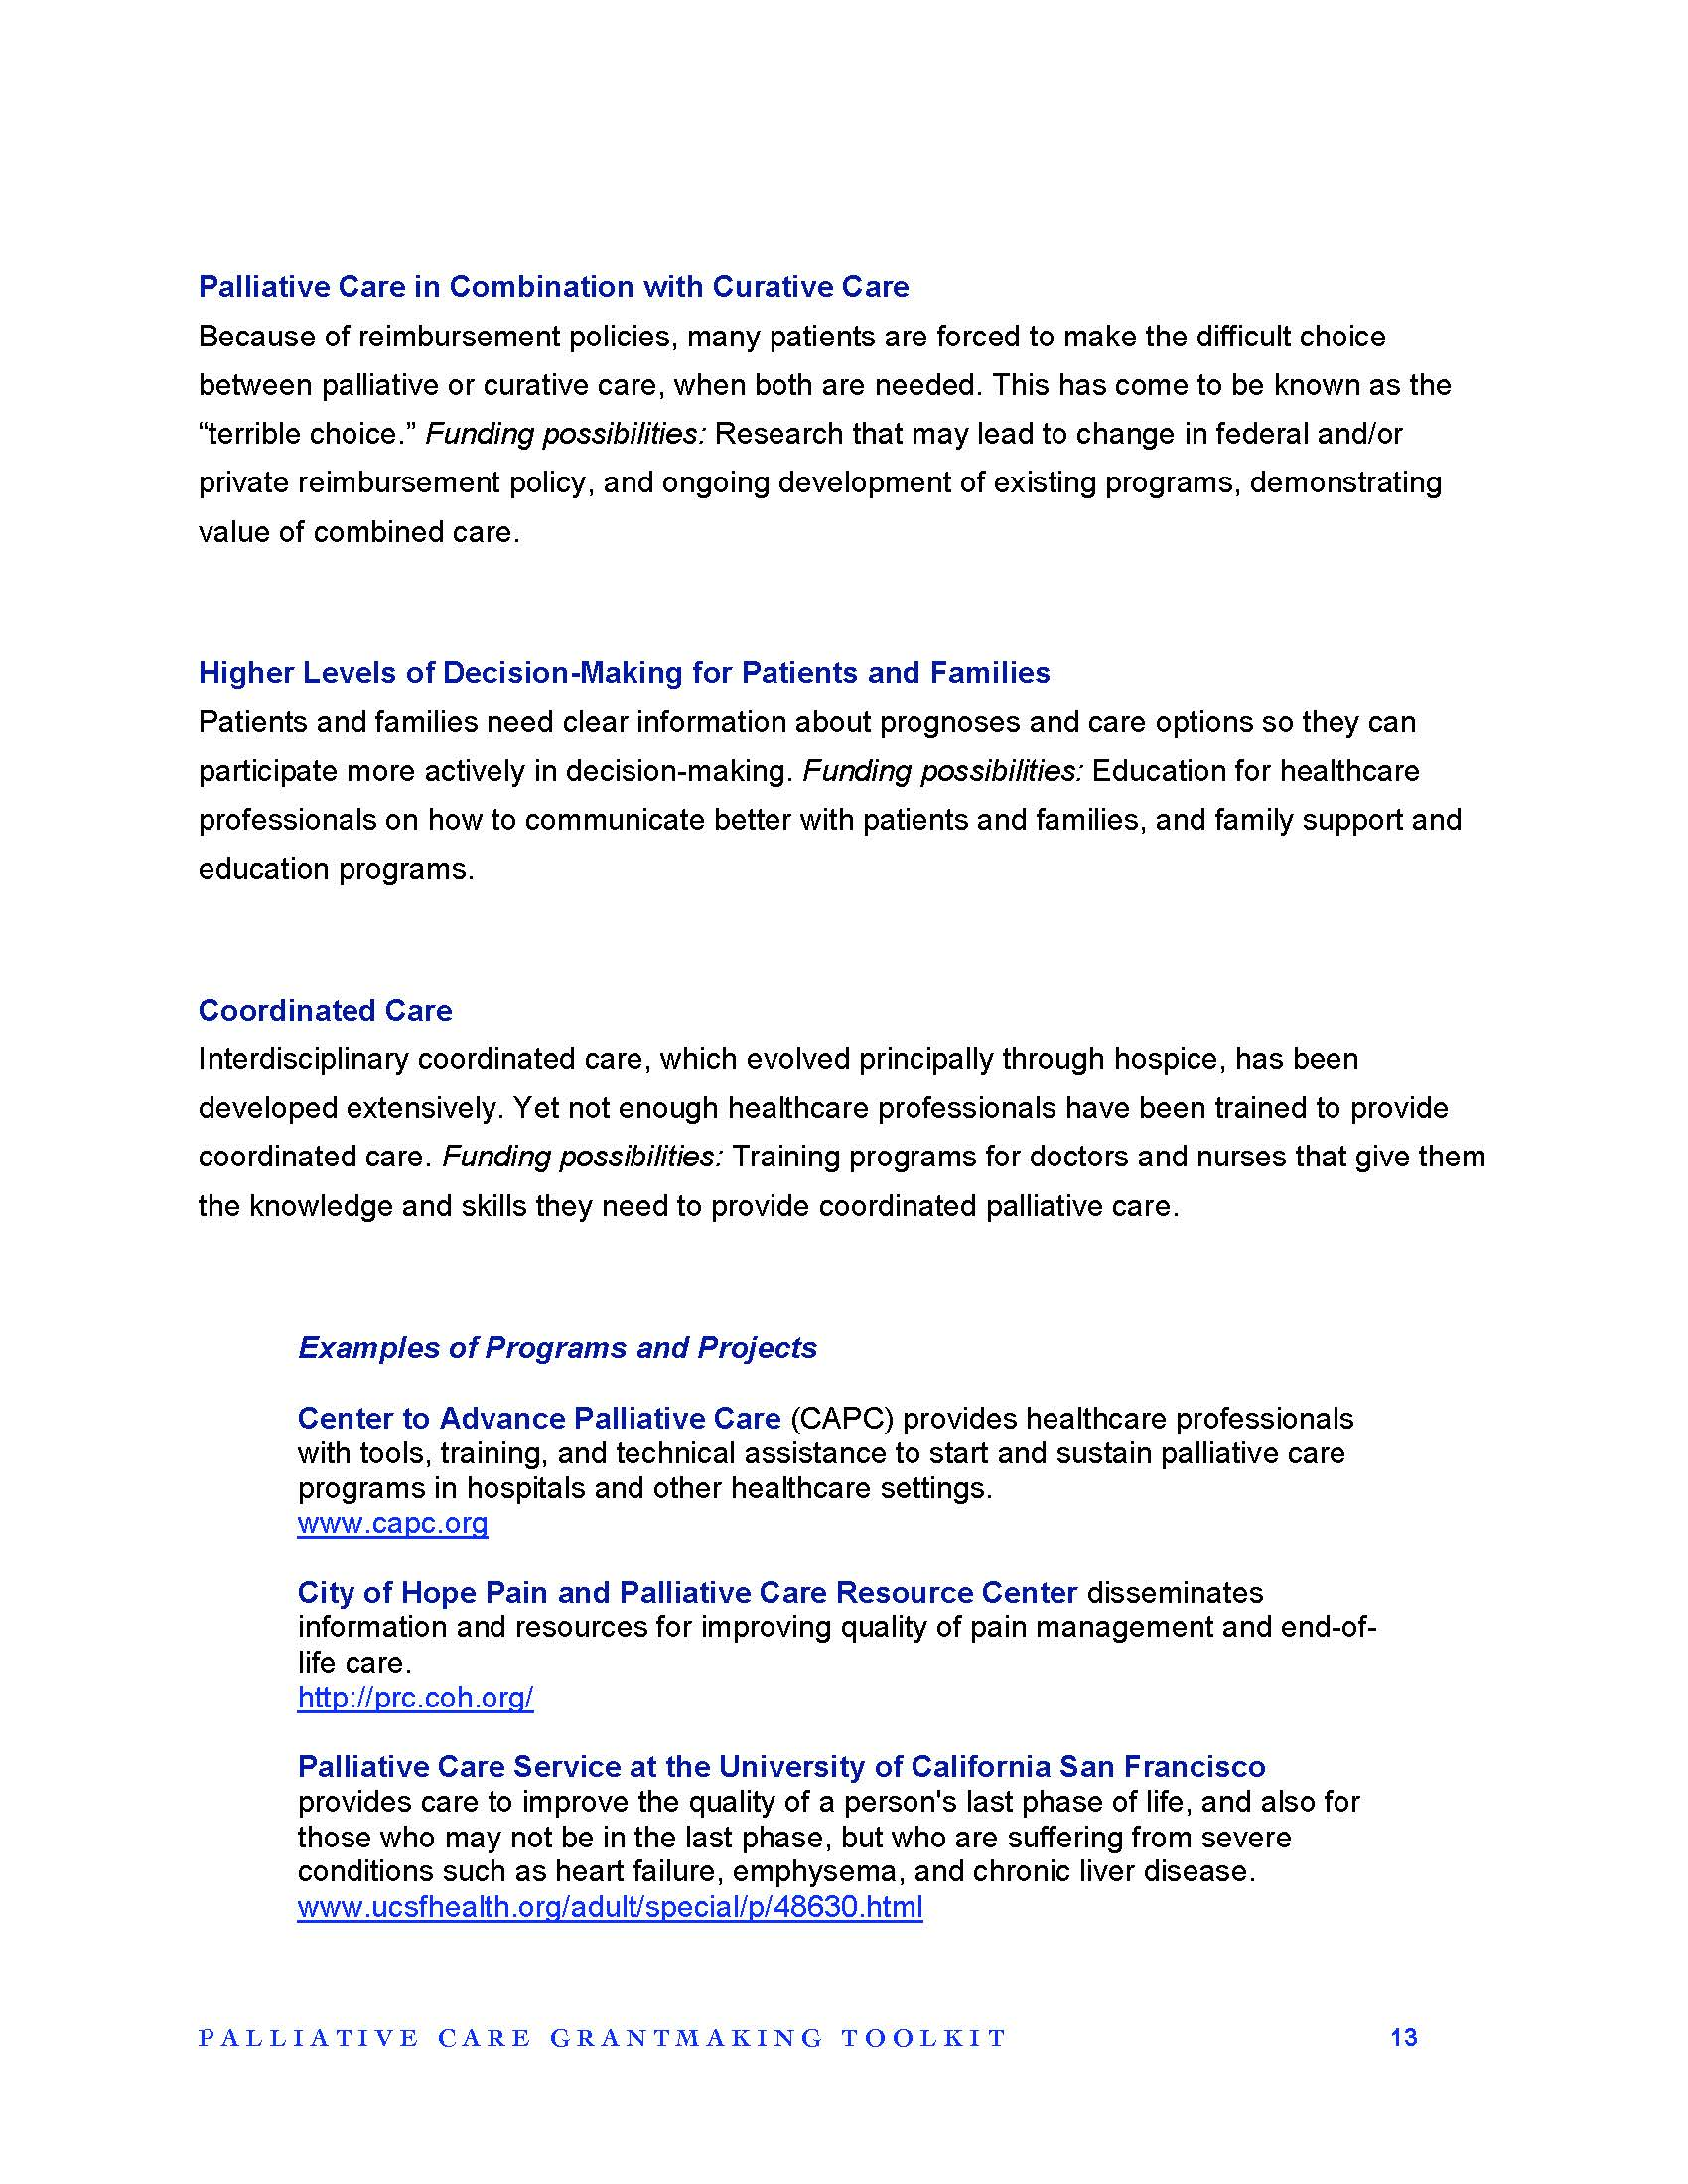 Palliative Care Grantmaking Toolkit_Page_14.jpg